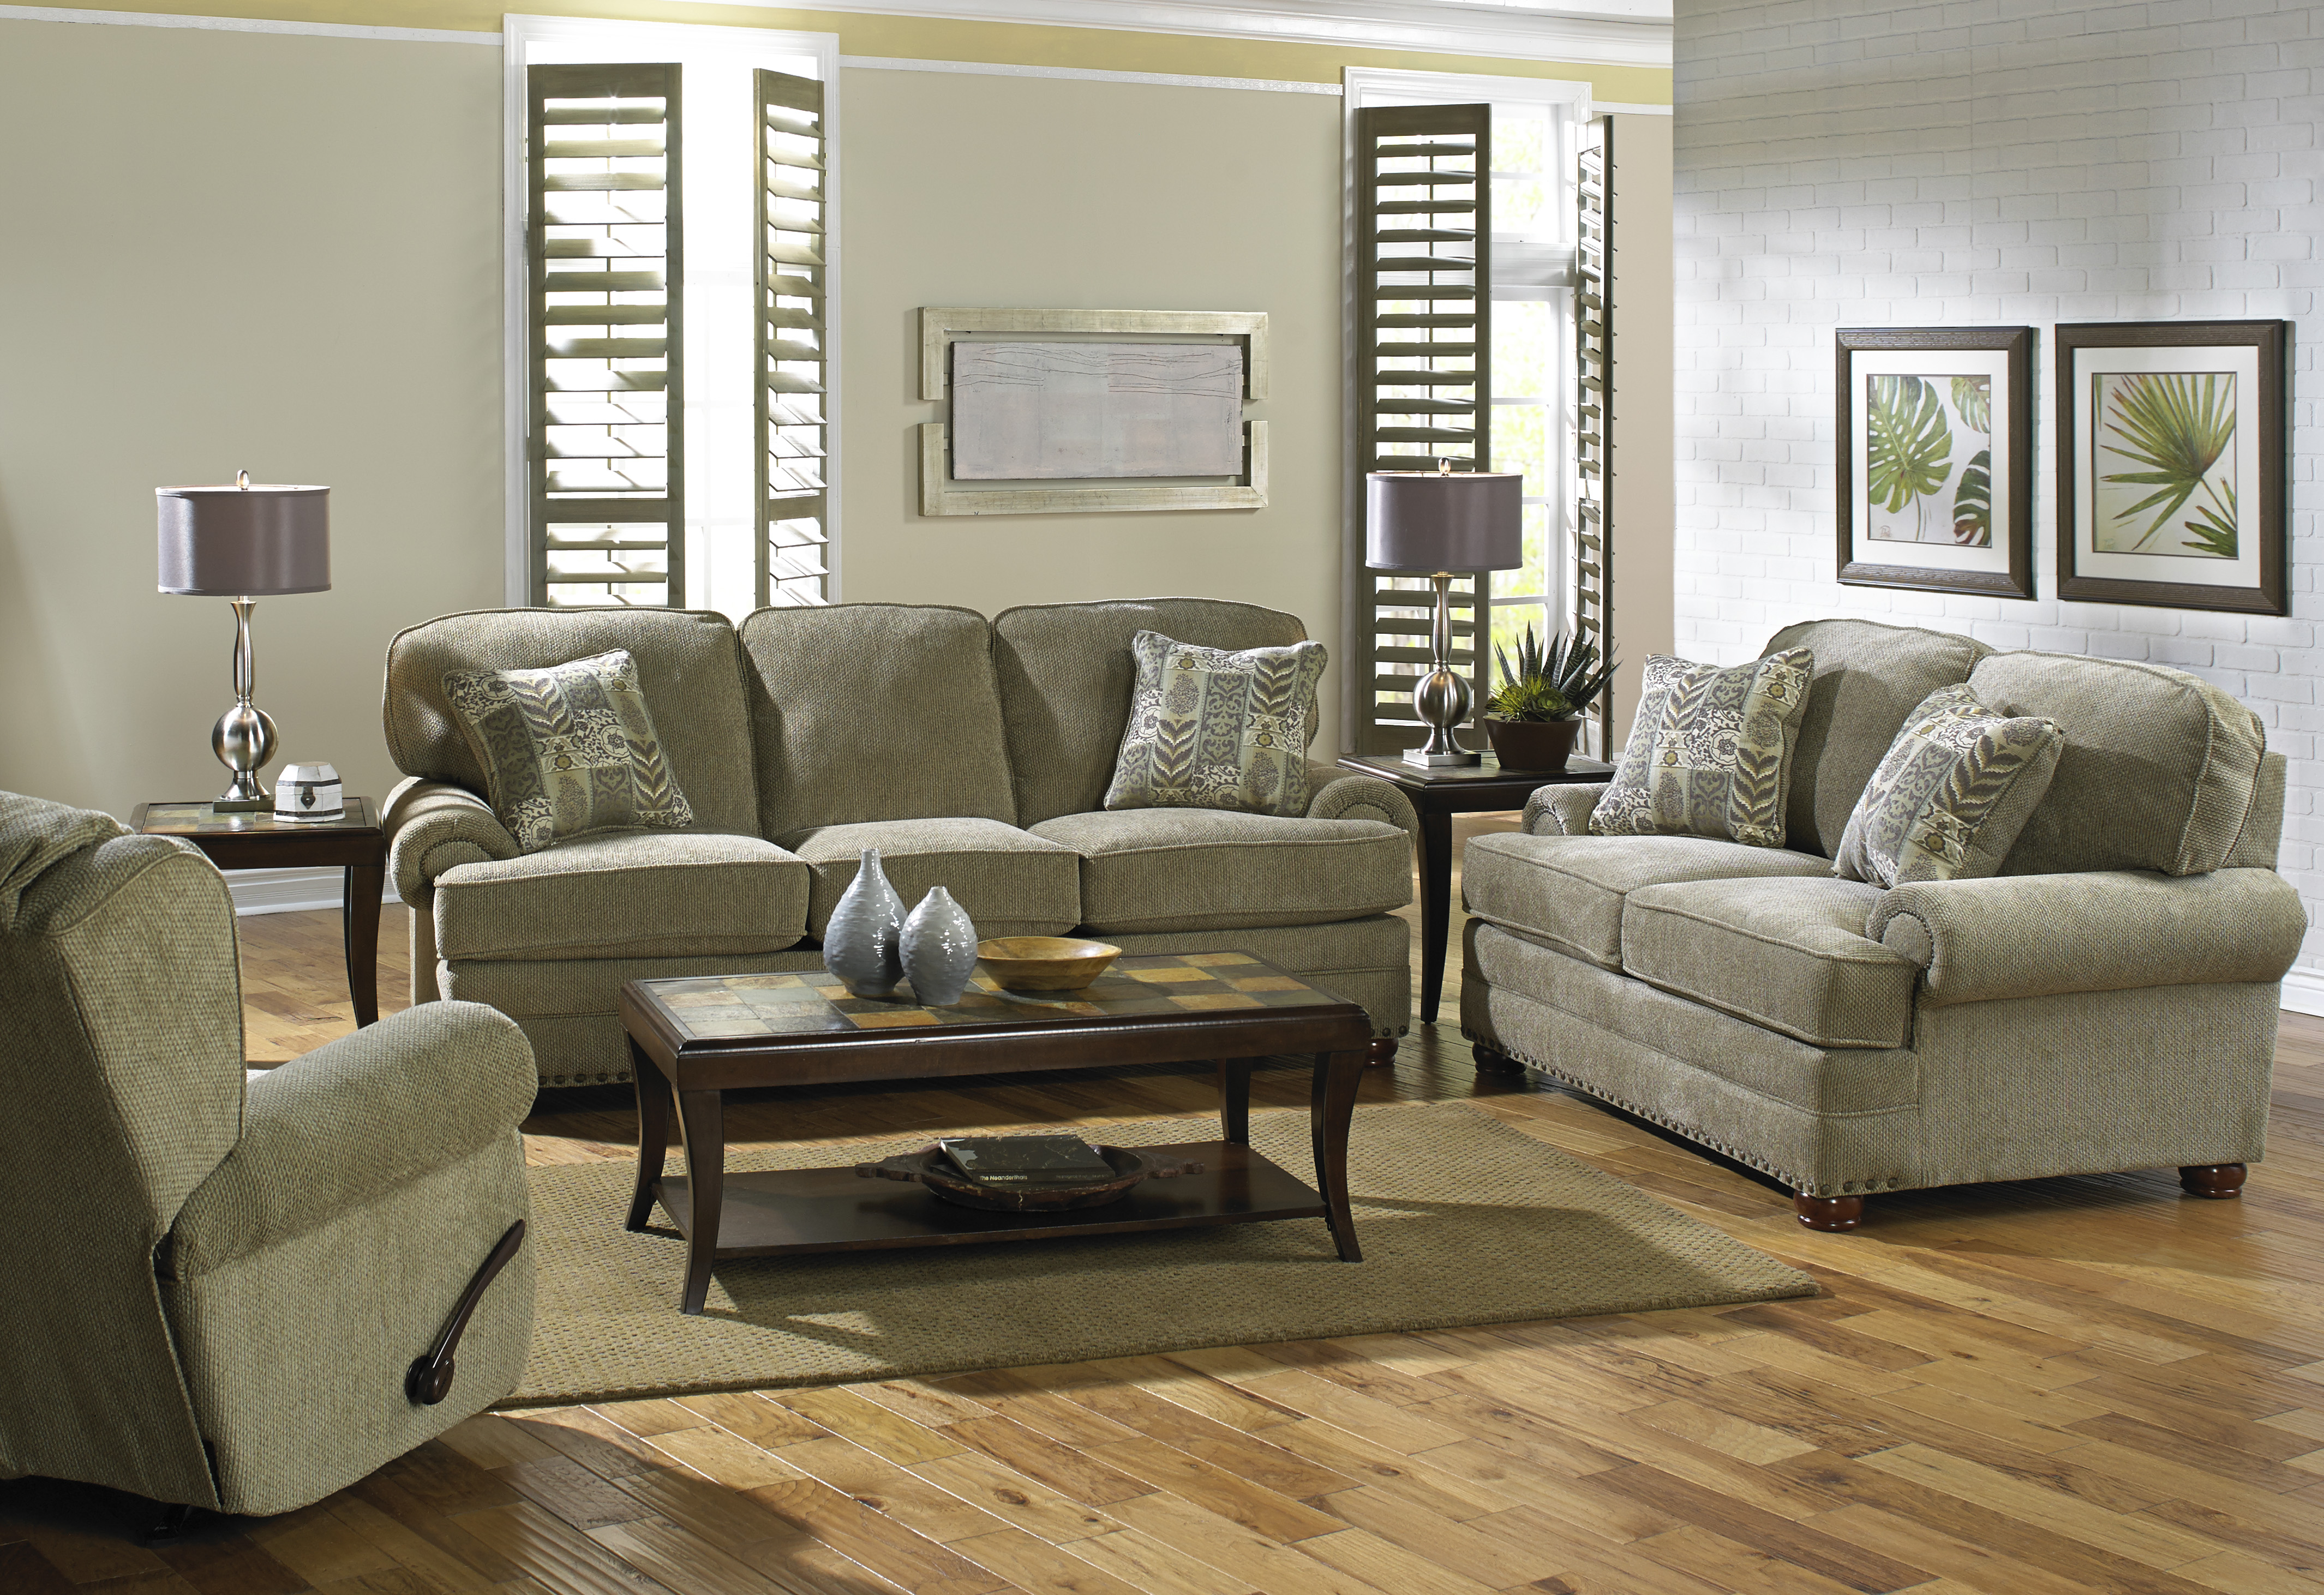 Sofas My Rooms Furniture Gallery . Kylee Lagoon Living Room ... Part 41